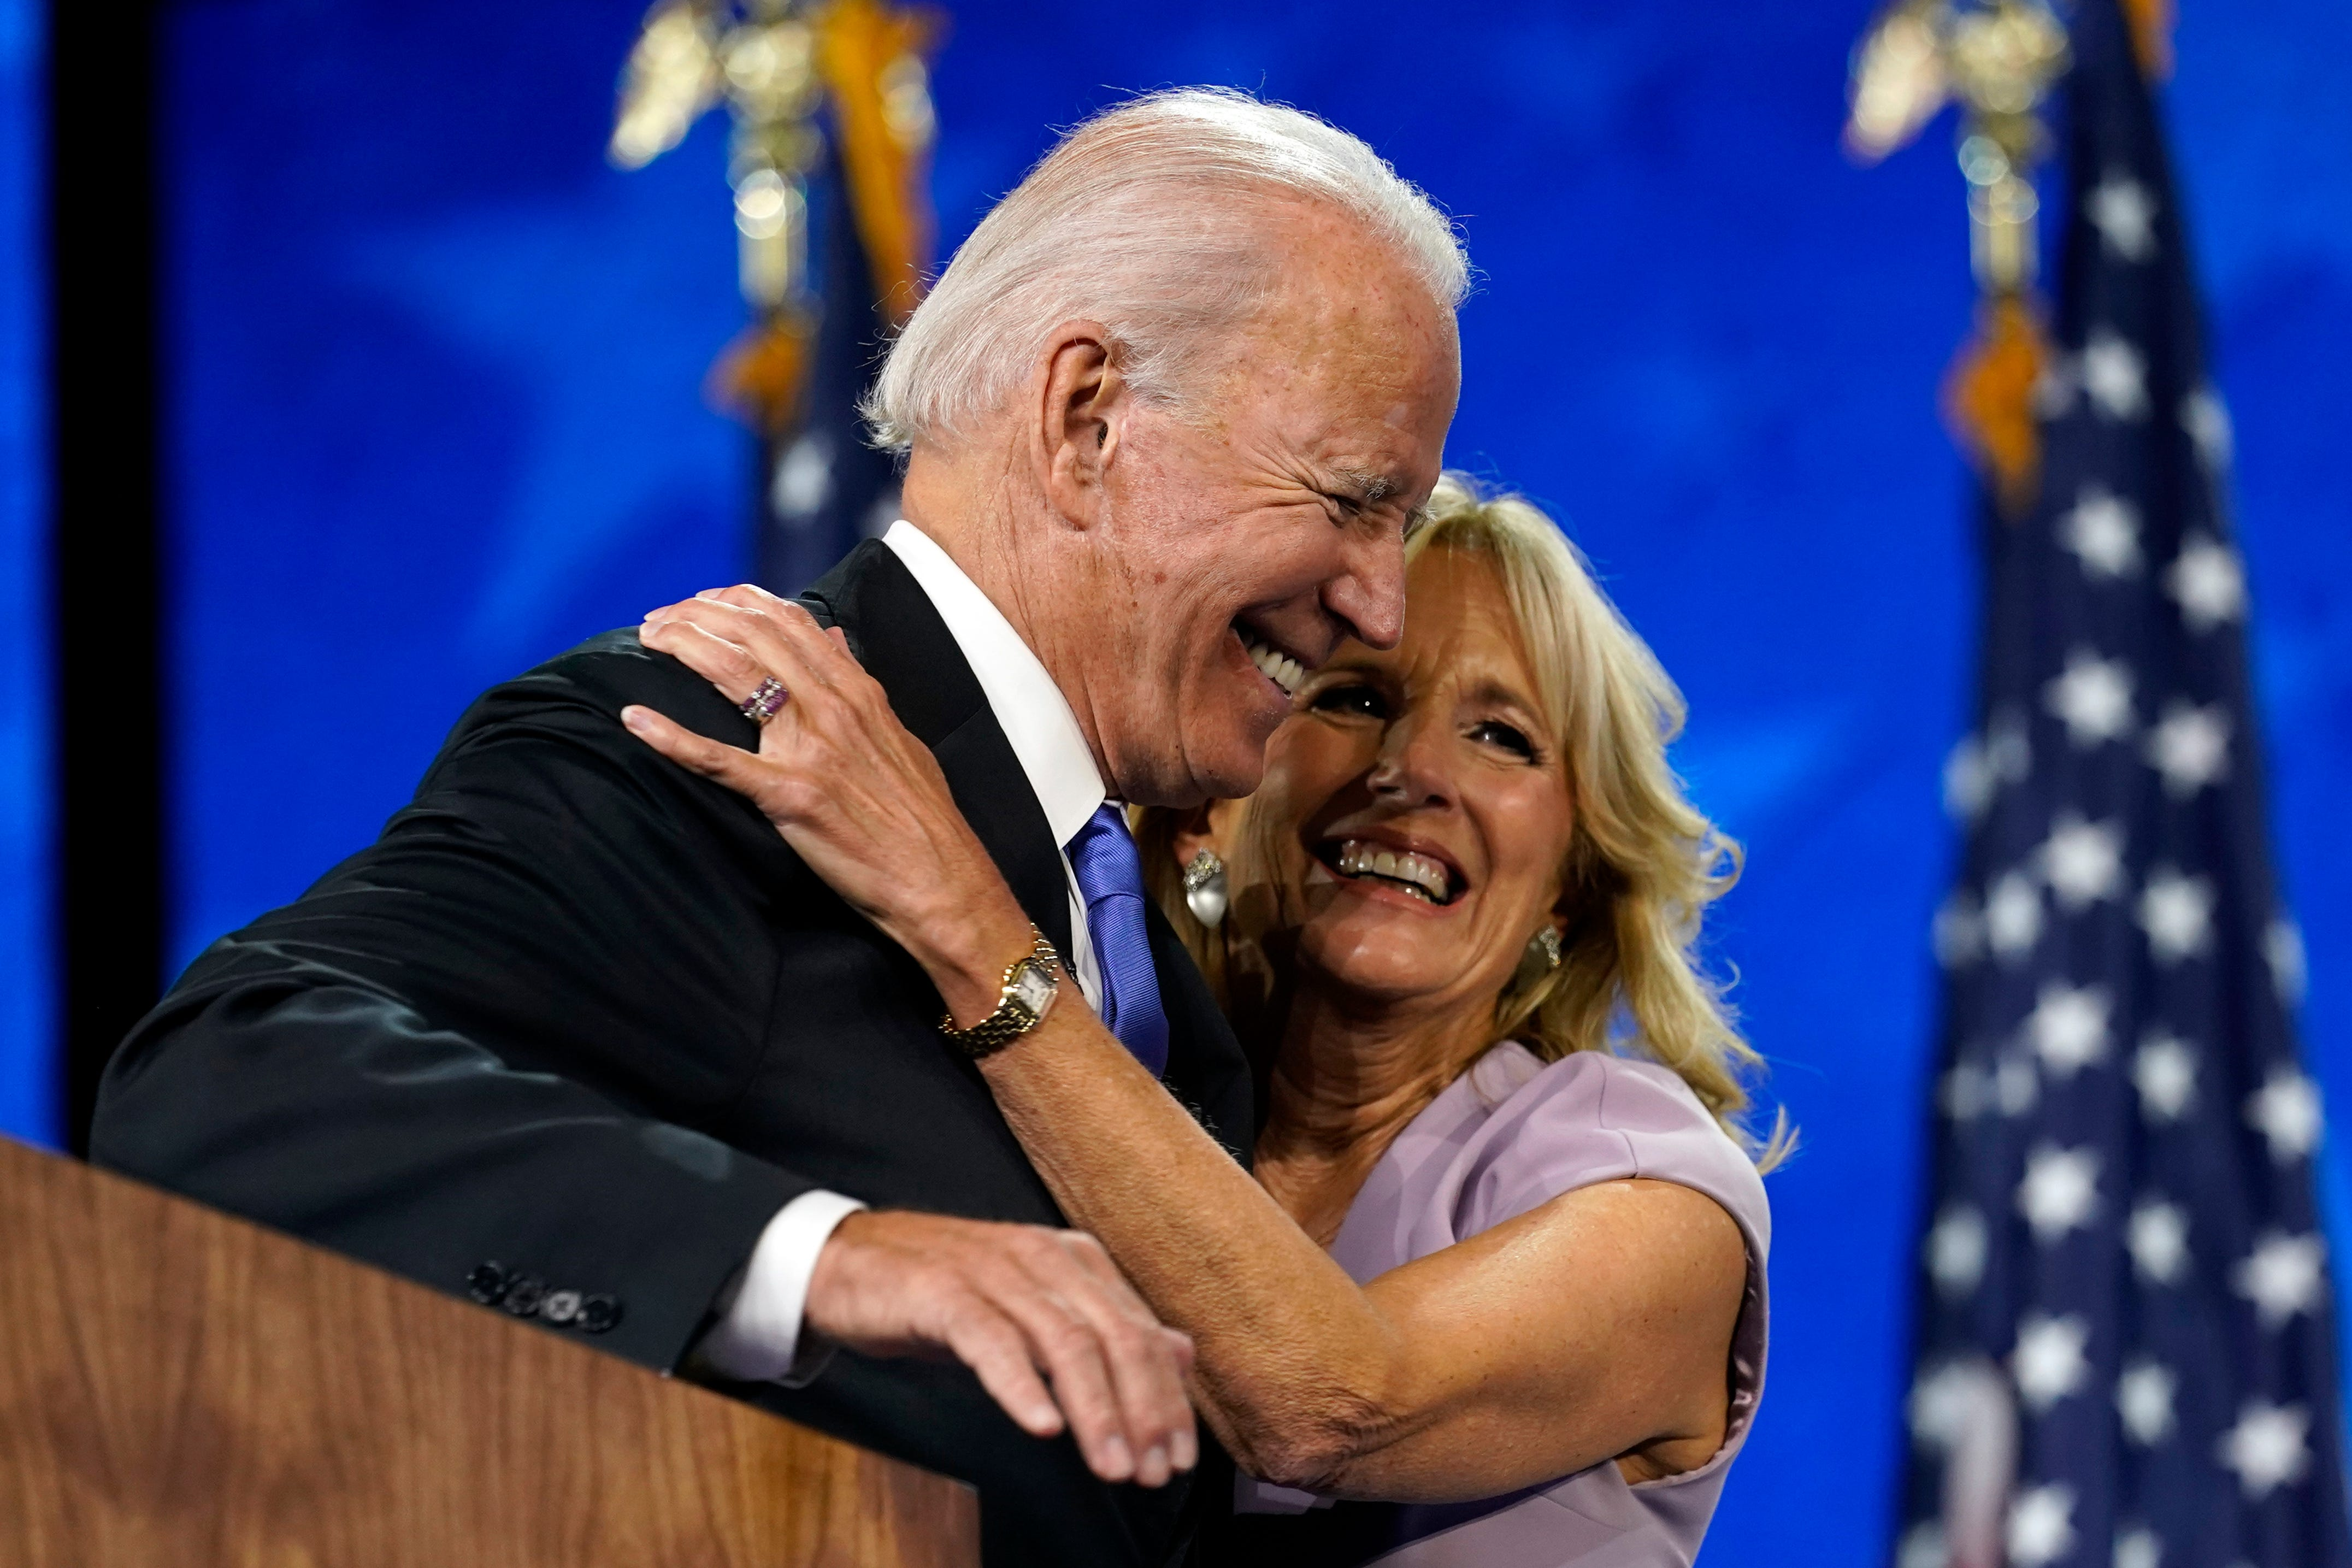 With Jon Ossoff and Raphael Warnock wins, Biden poised to cut taxes and boost health care